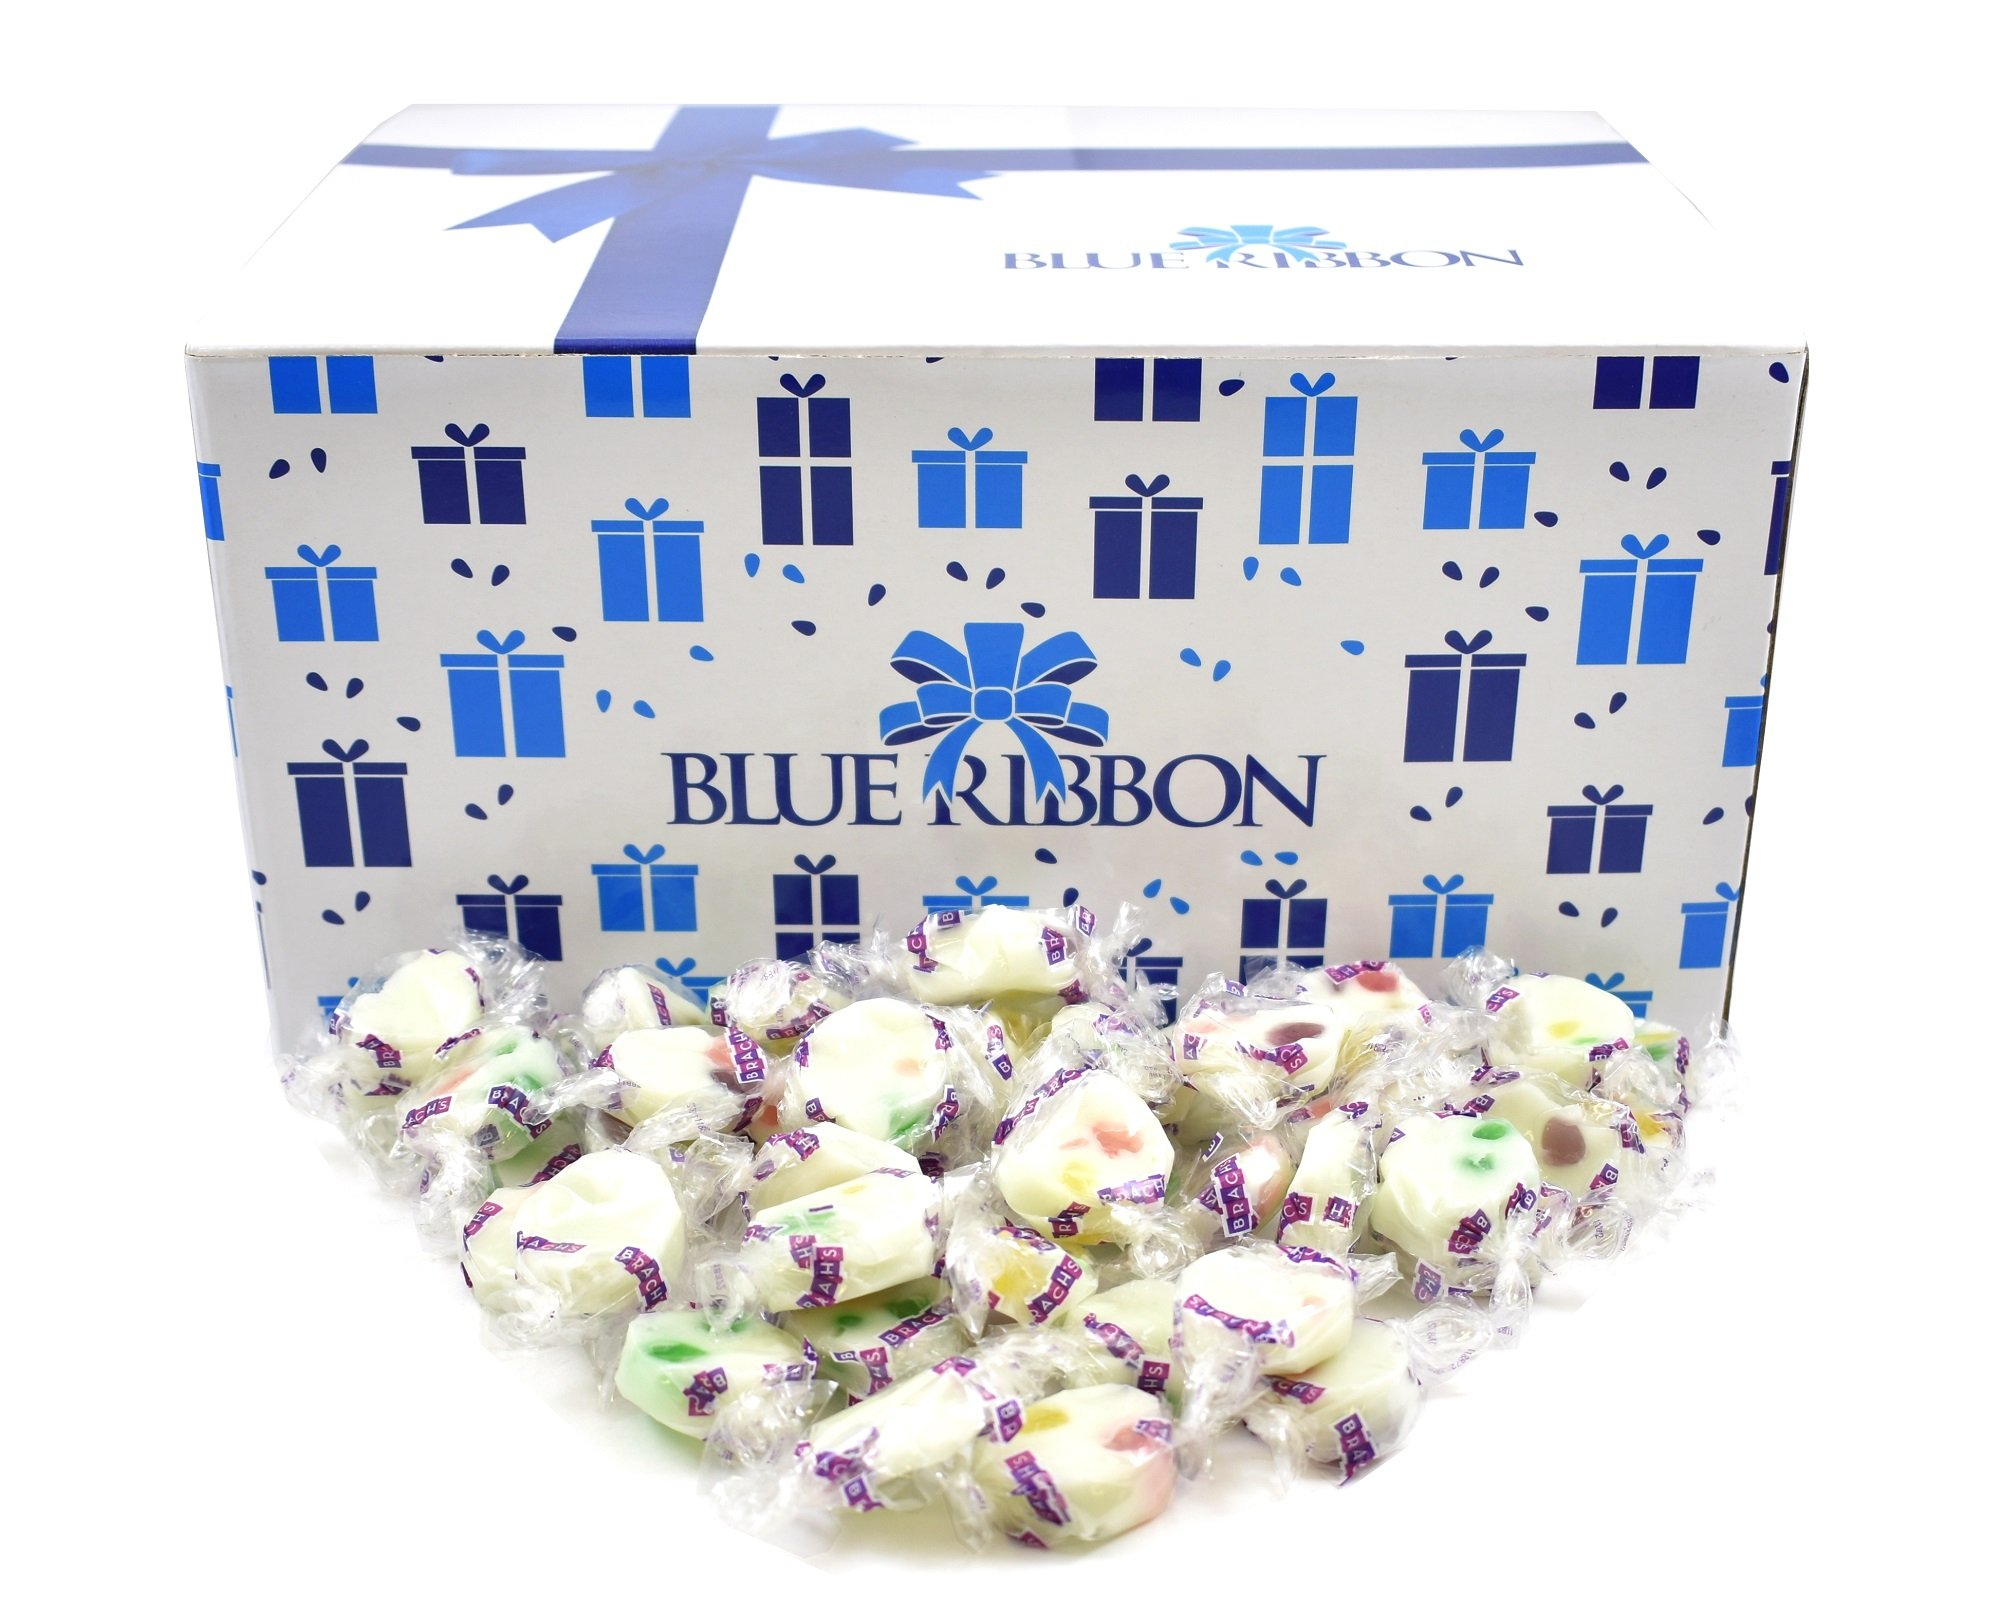 Brach's Jelly Nougats, Individually Wrapped in Bulk by Blue Ribbon, 9 Lbs by Blue Ribbon